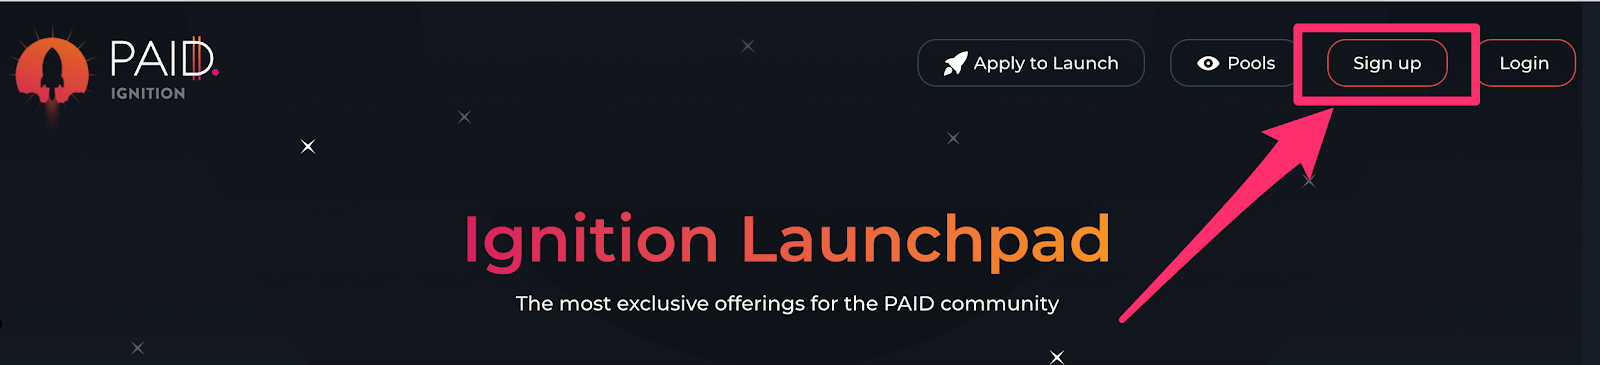 Signup Paid Ignition